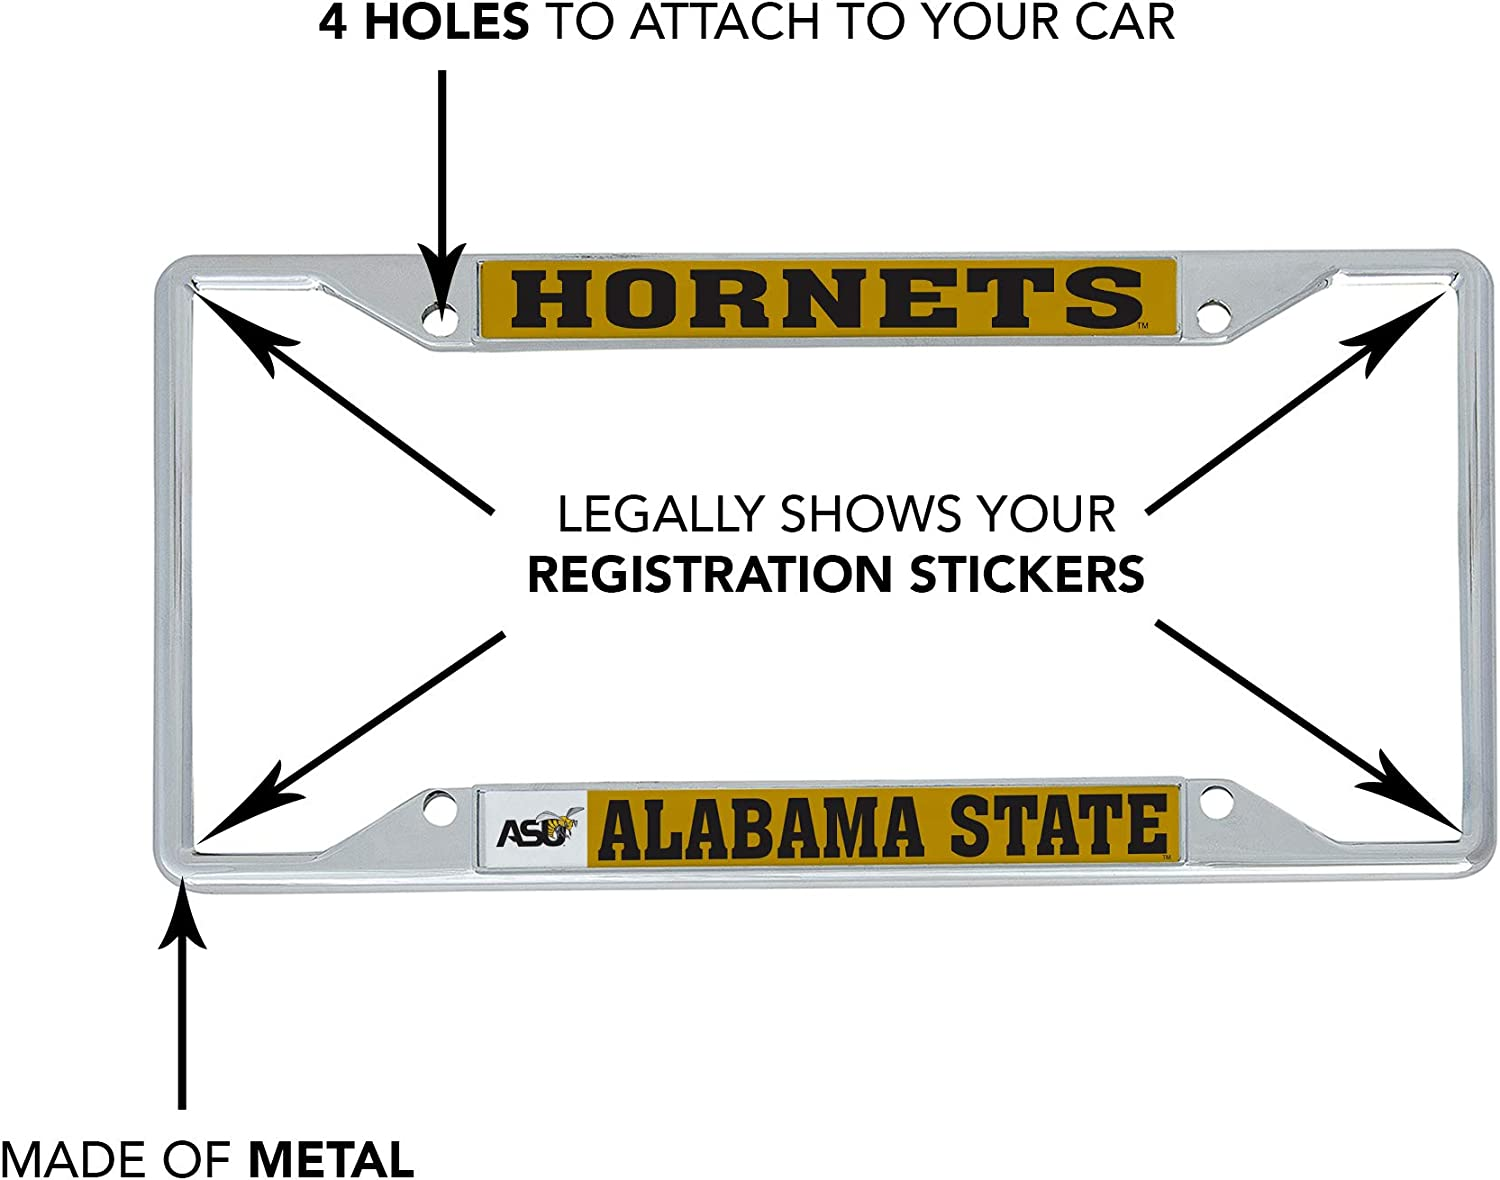 Desert Cactus Alabama State University ASU Hornets NCAA HBCU Metal License Plate Frame for Front Back of Car Officially Licensed Mascot